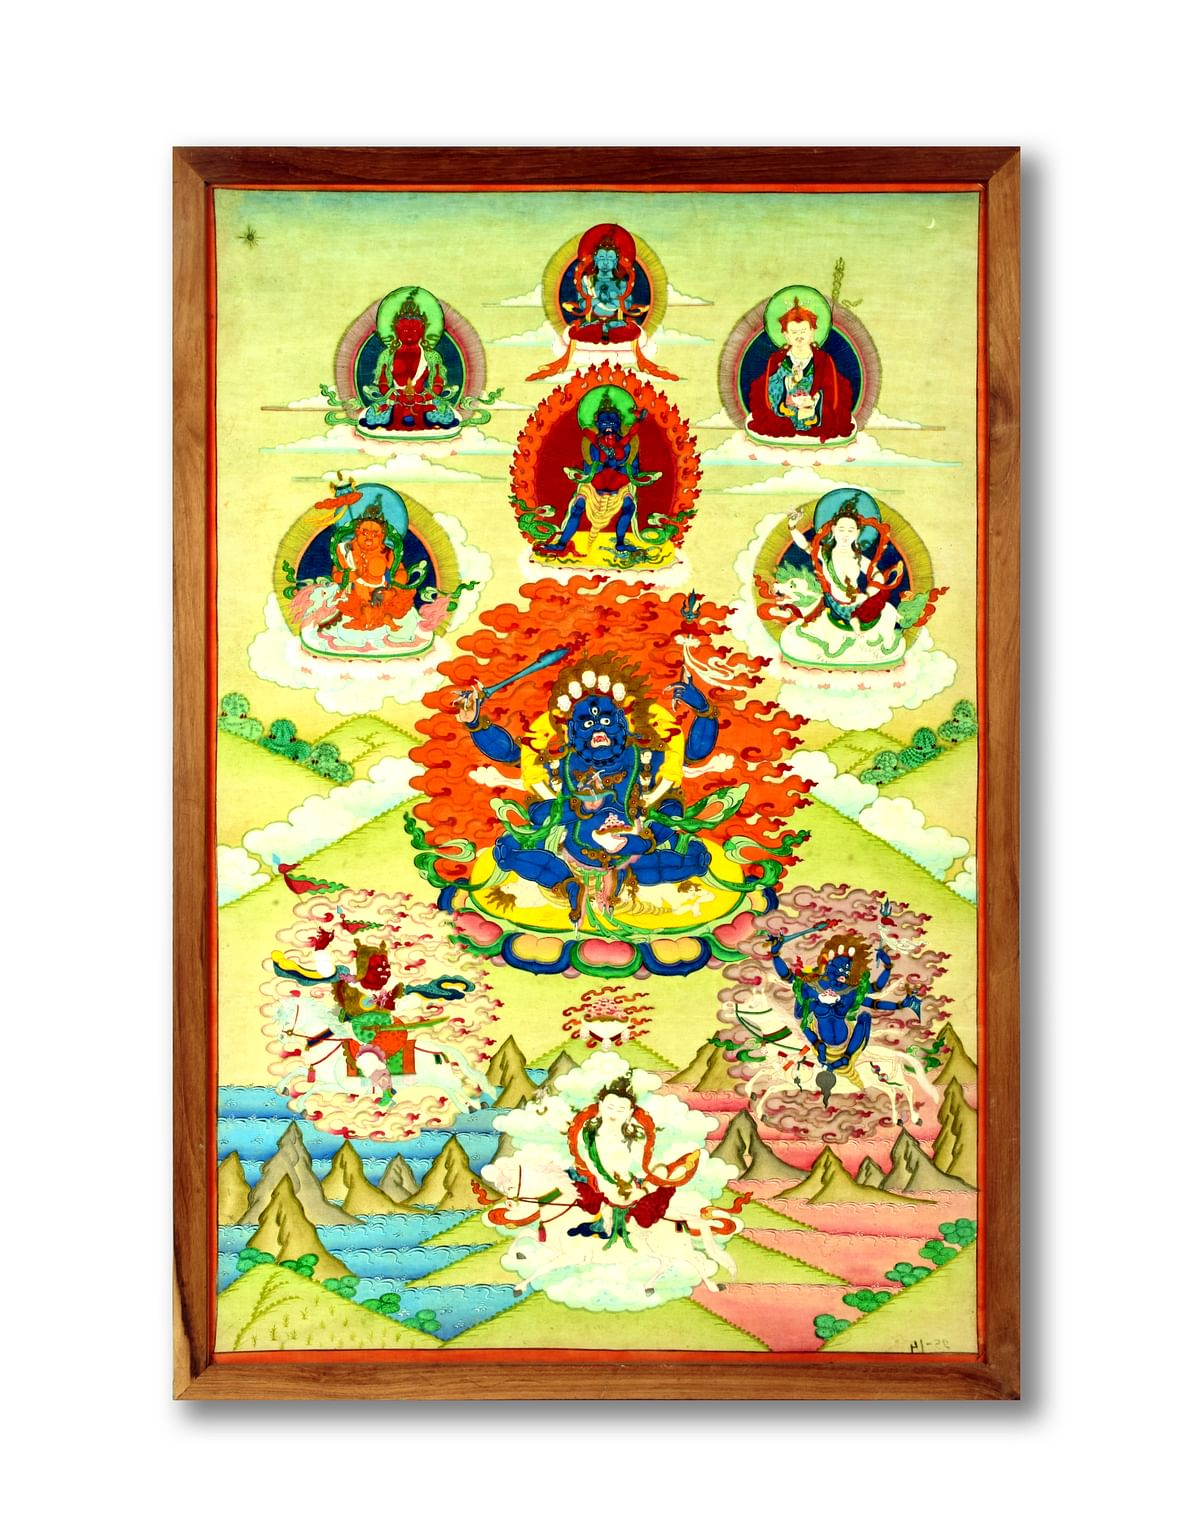 Another Thangka painting